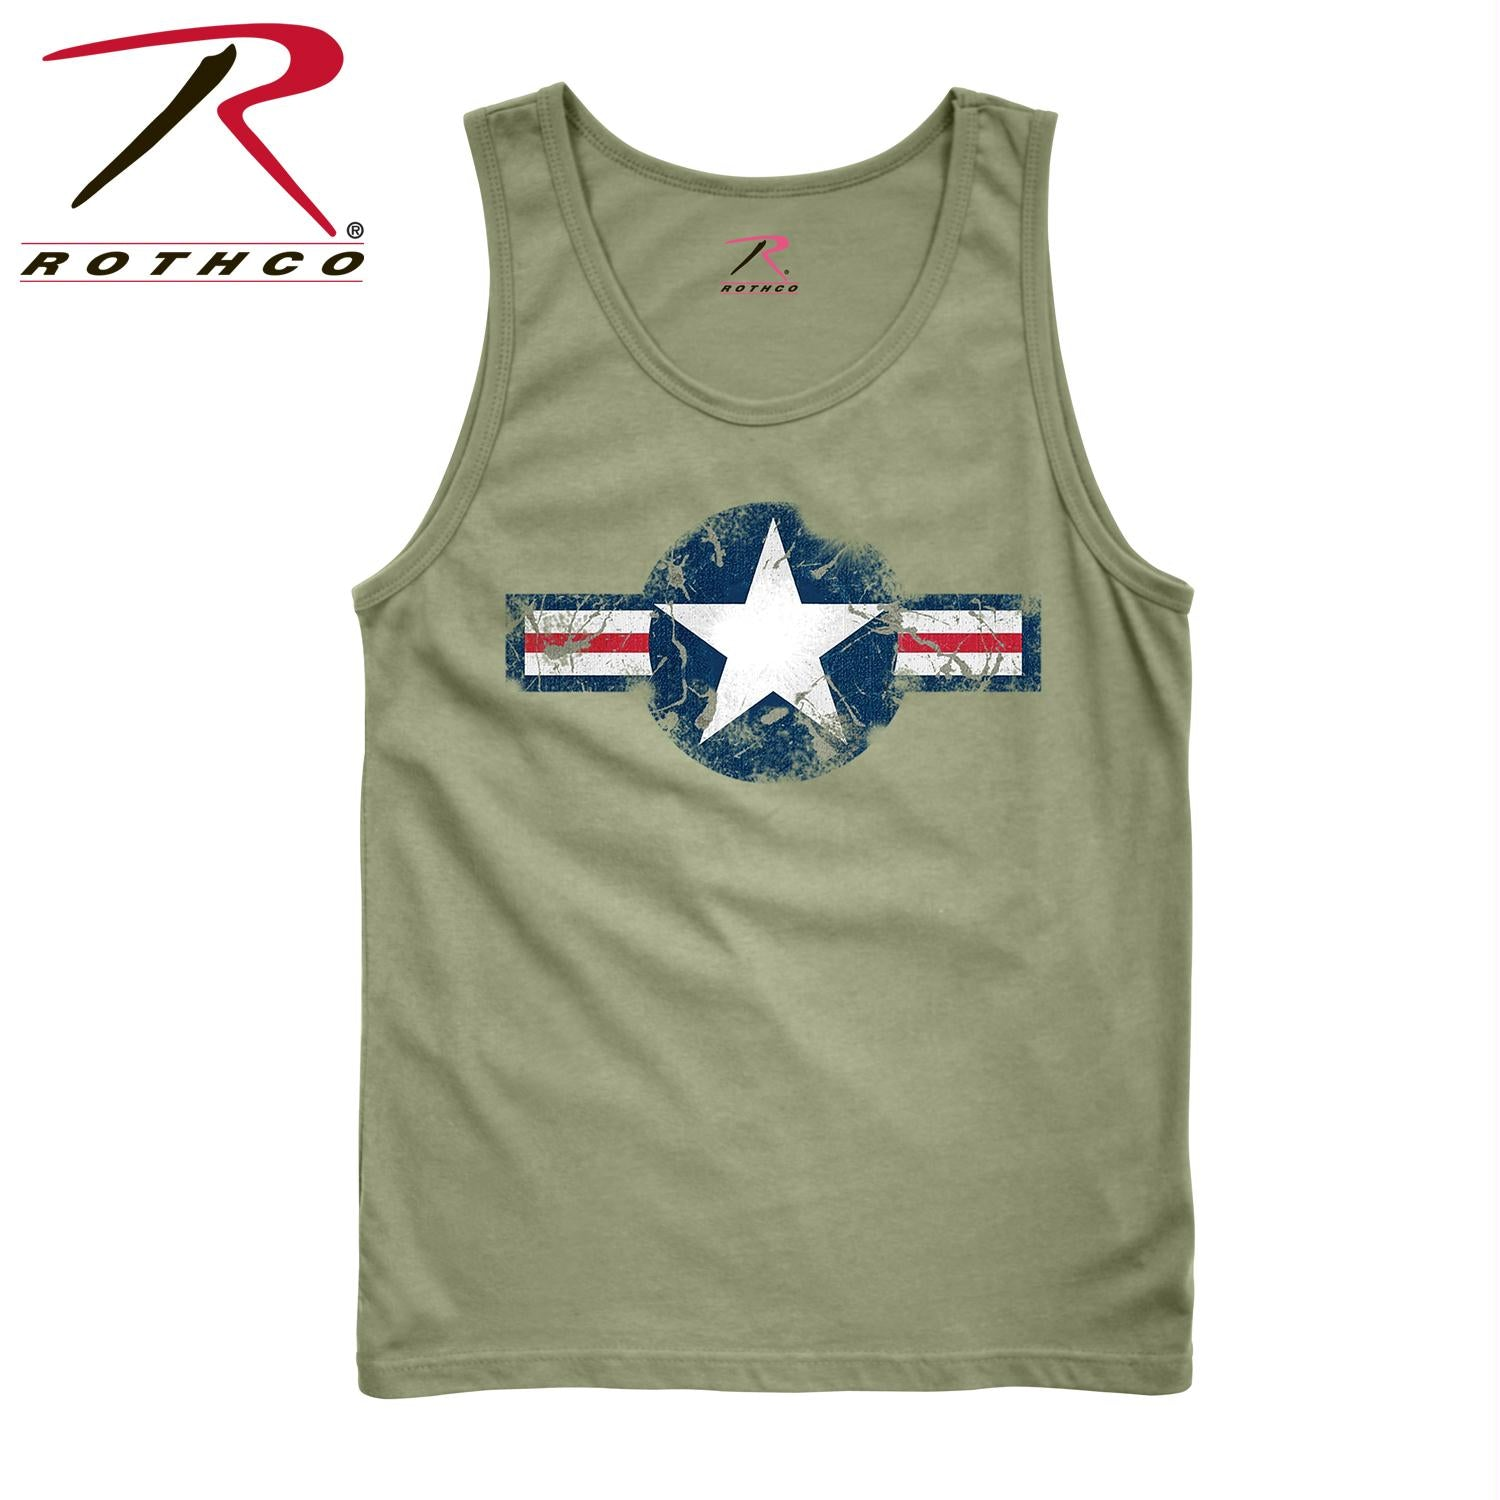 Rothco Vintage Air Corps Tank Top - S